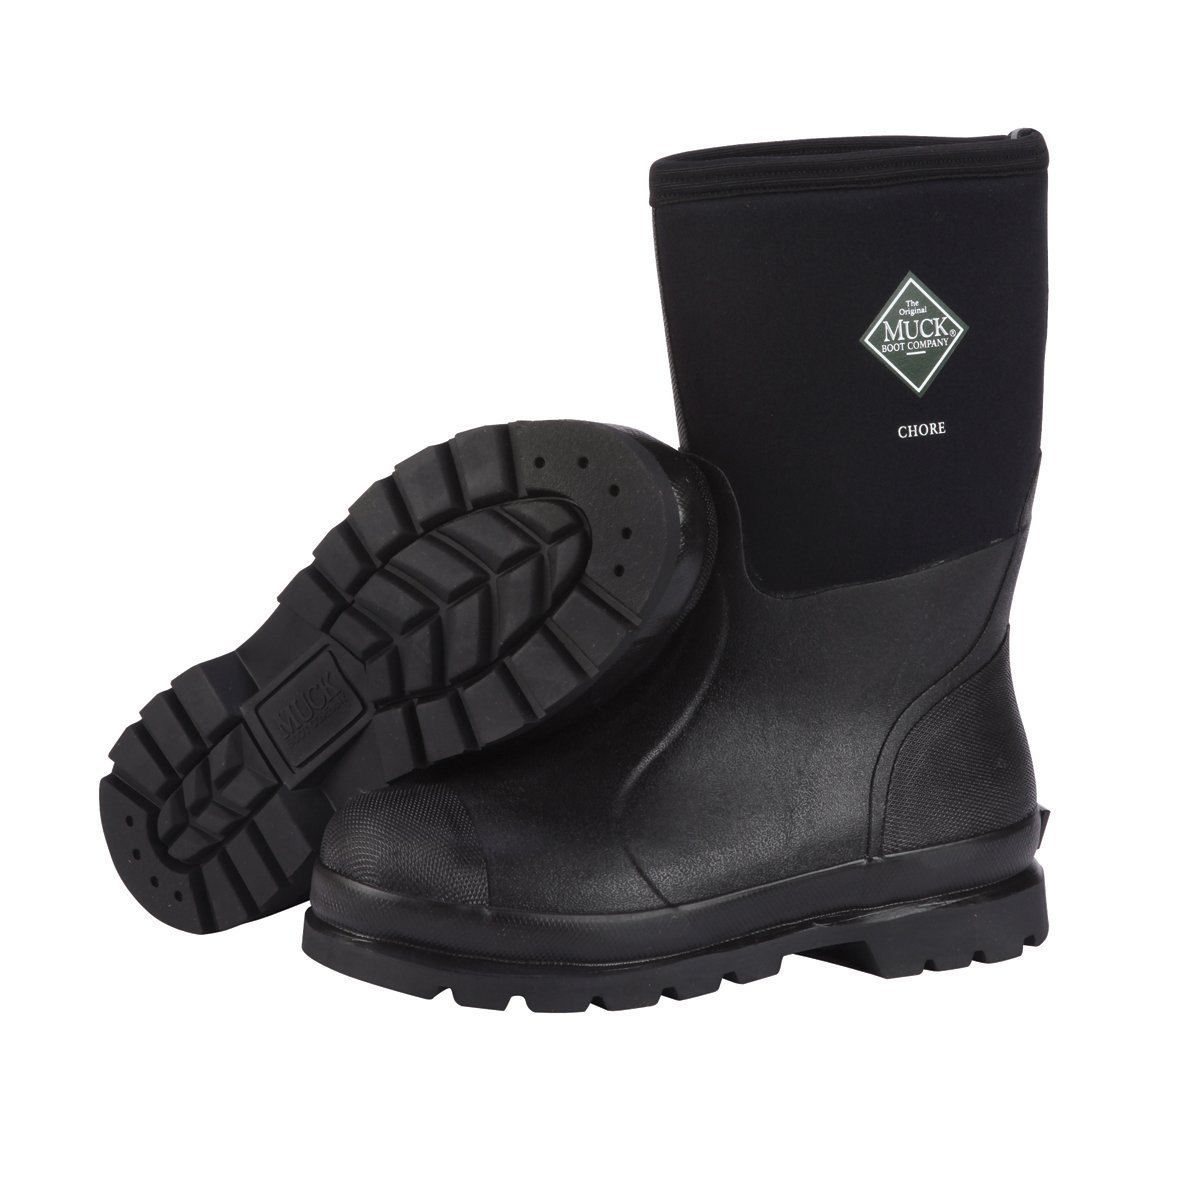 The Original MuckBoots Adult Chore Mid Rain Boot B000WG48O6 Men's 16 M/Women's 17 M|Black